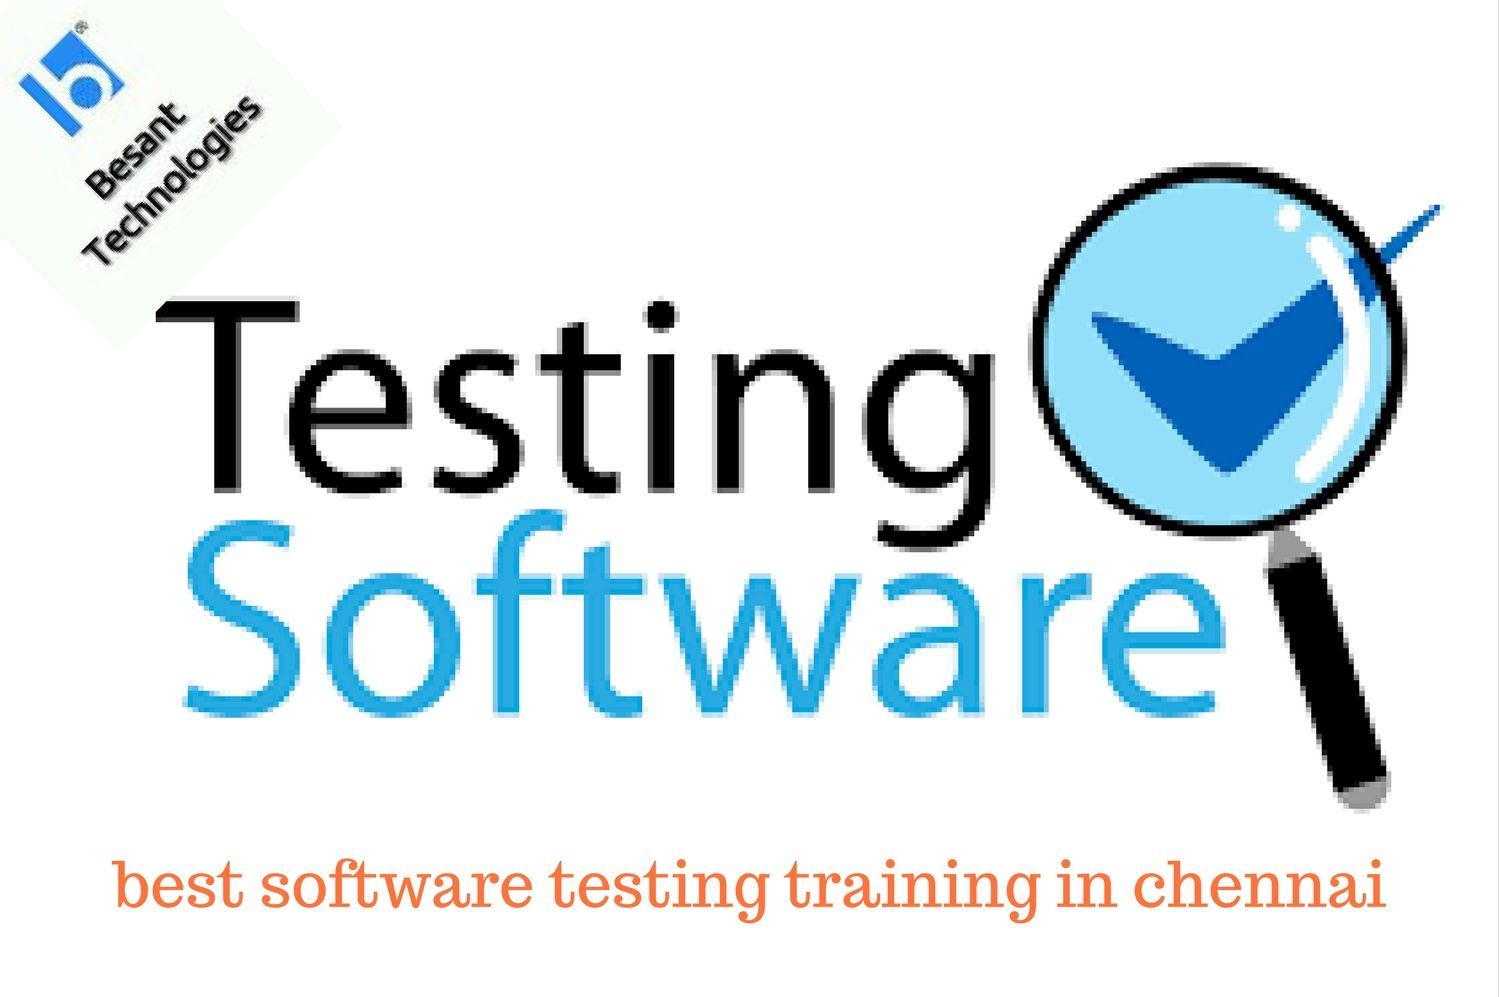 Software testing is an investigation conducted to provide